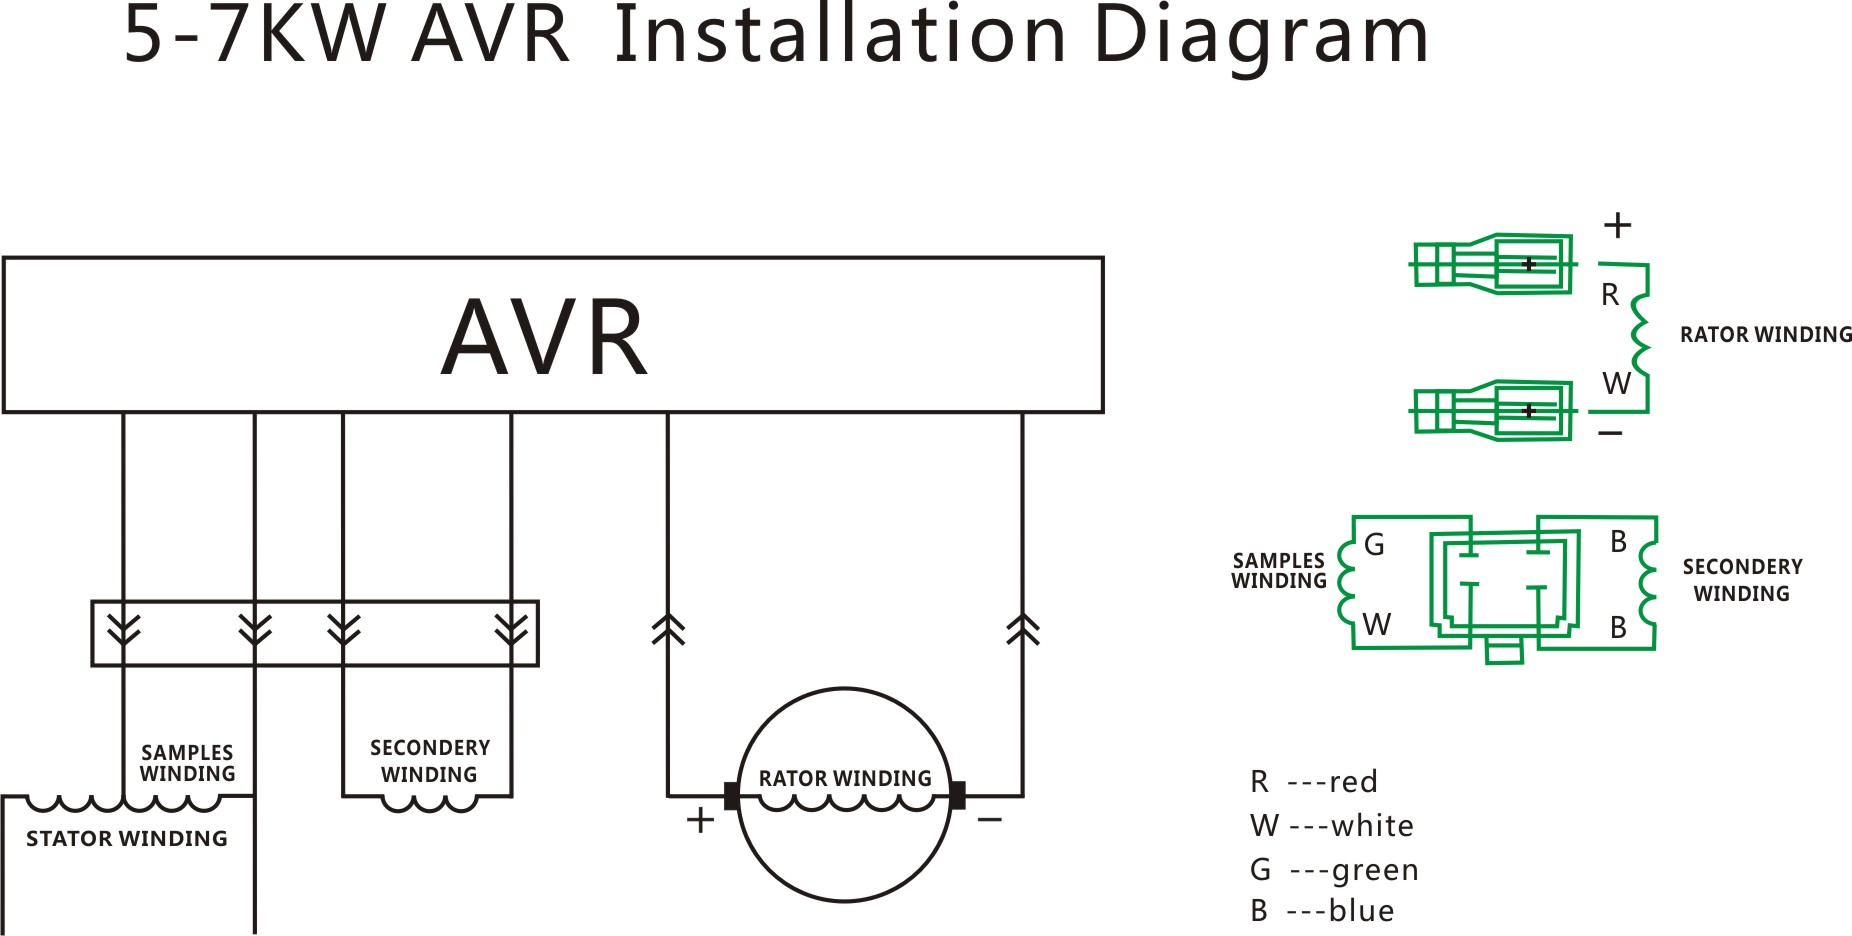 5 7KW AVR install diagram how to replacing portable generator avr? china avr alternator diesel generator avr wiring diagram pdf at readyjetset.co